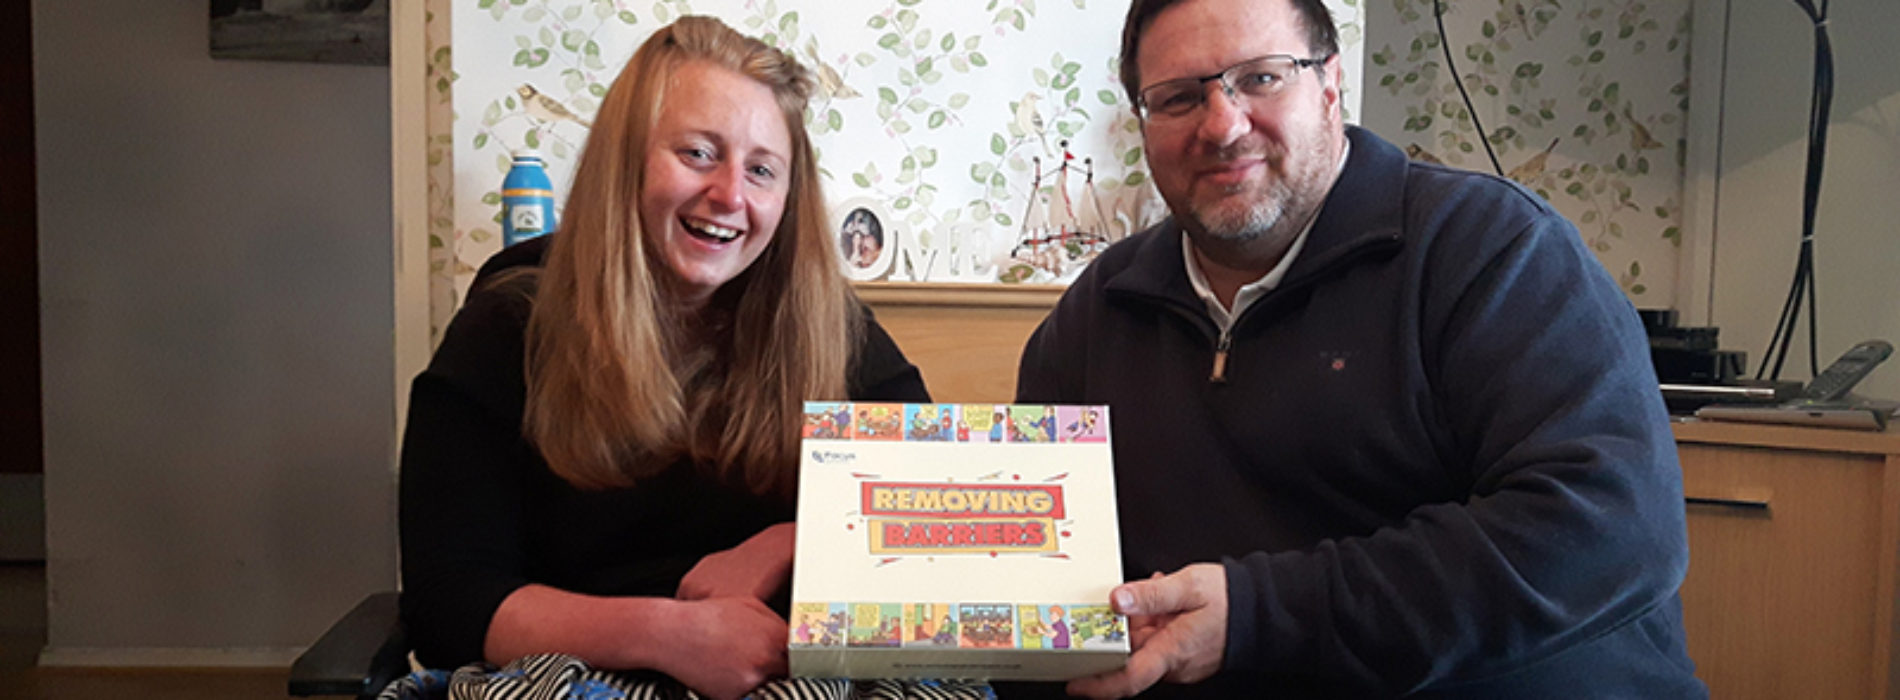 Removing Barriers: the board game that educates about disabling barriers